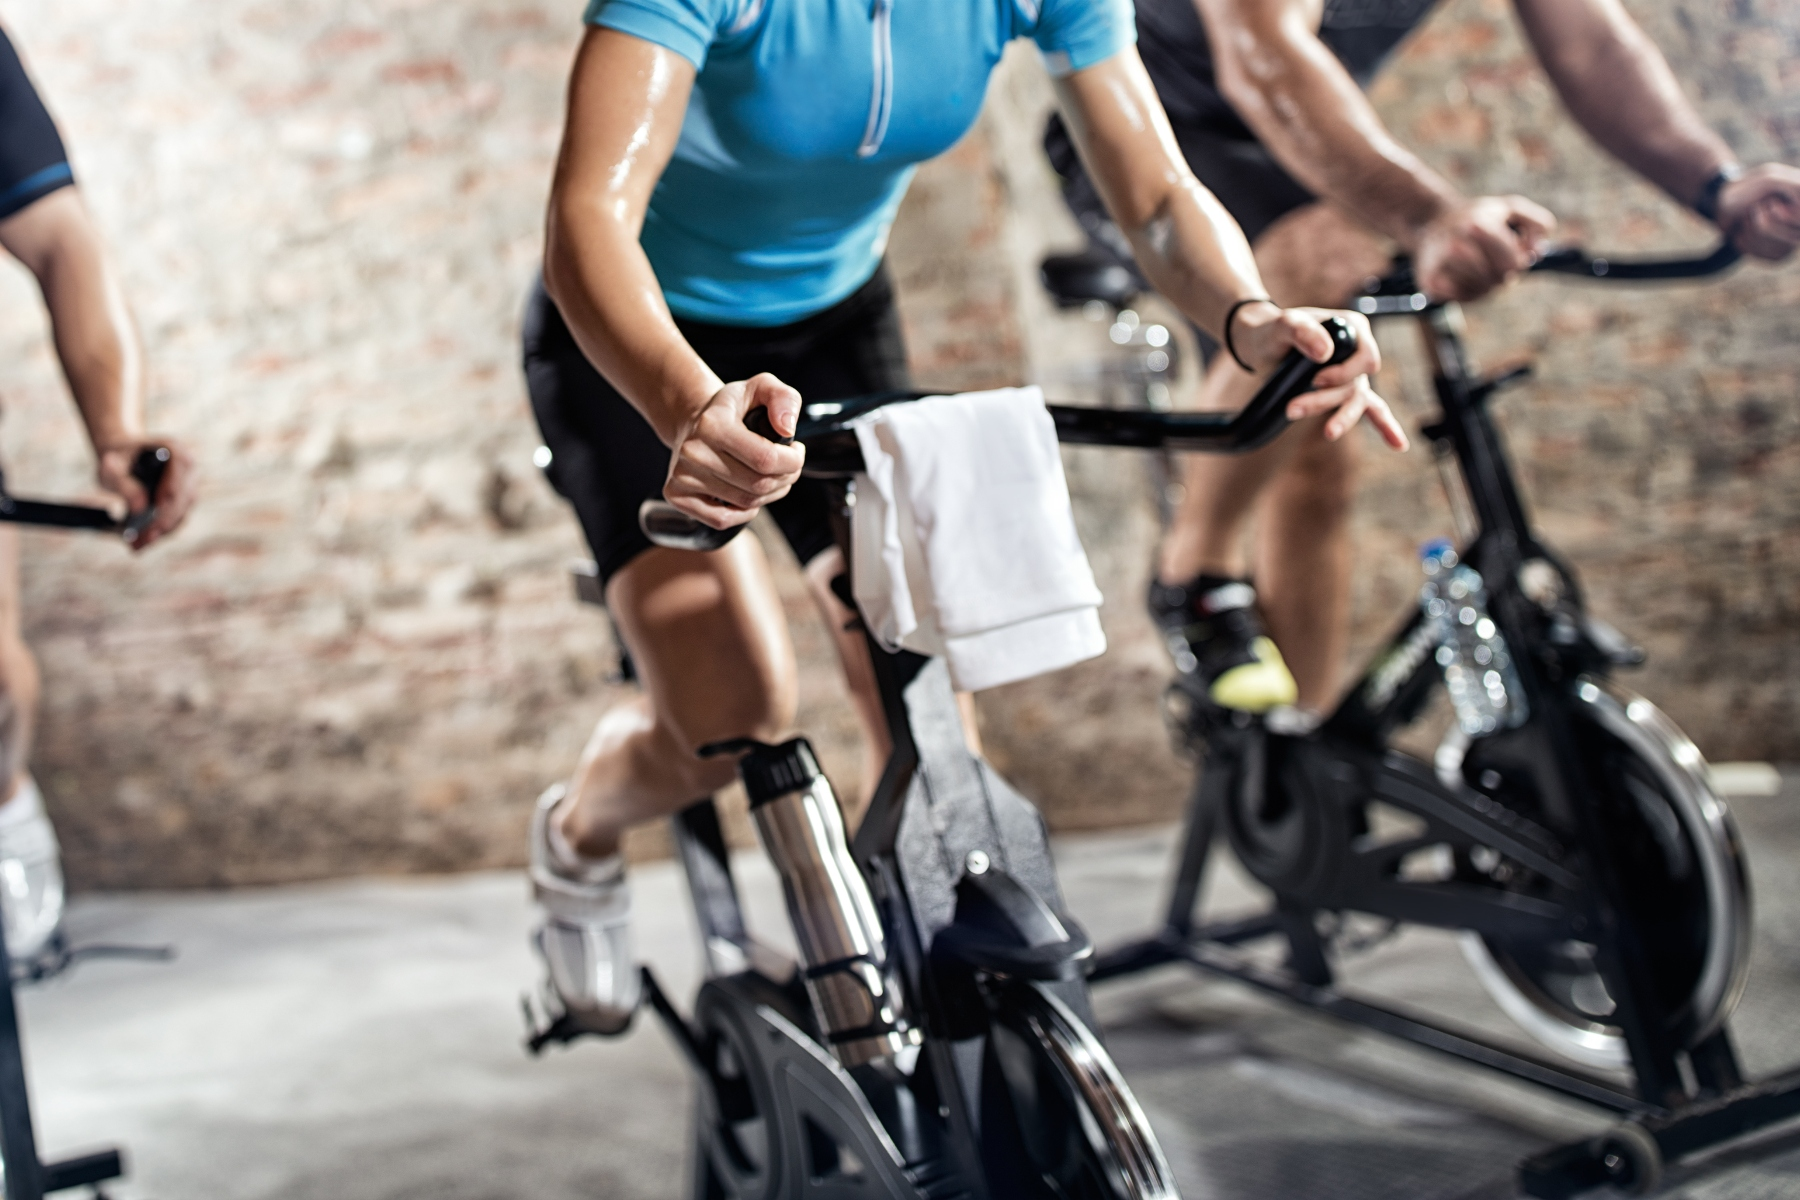 sports clothing people riding exercise bikes, cardio fitness class – ©AdobeStock